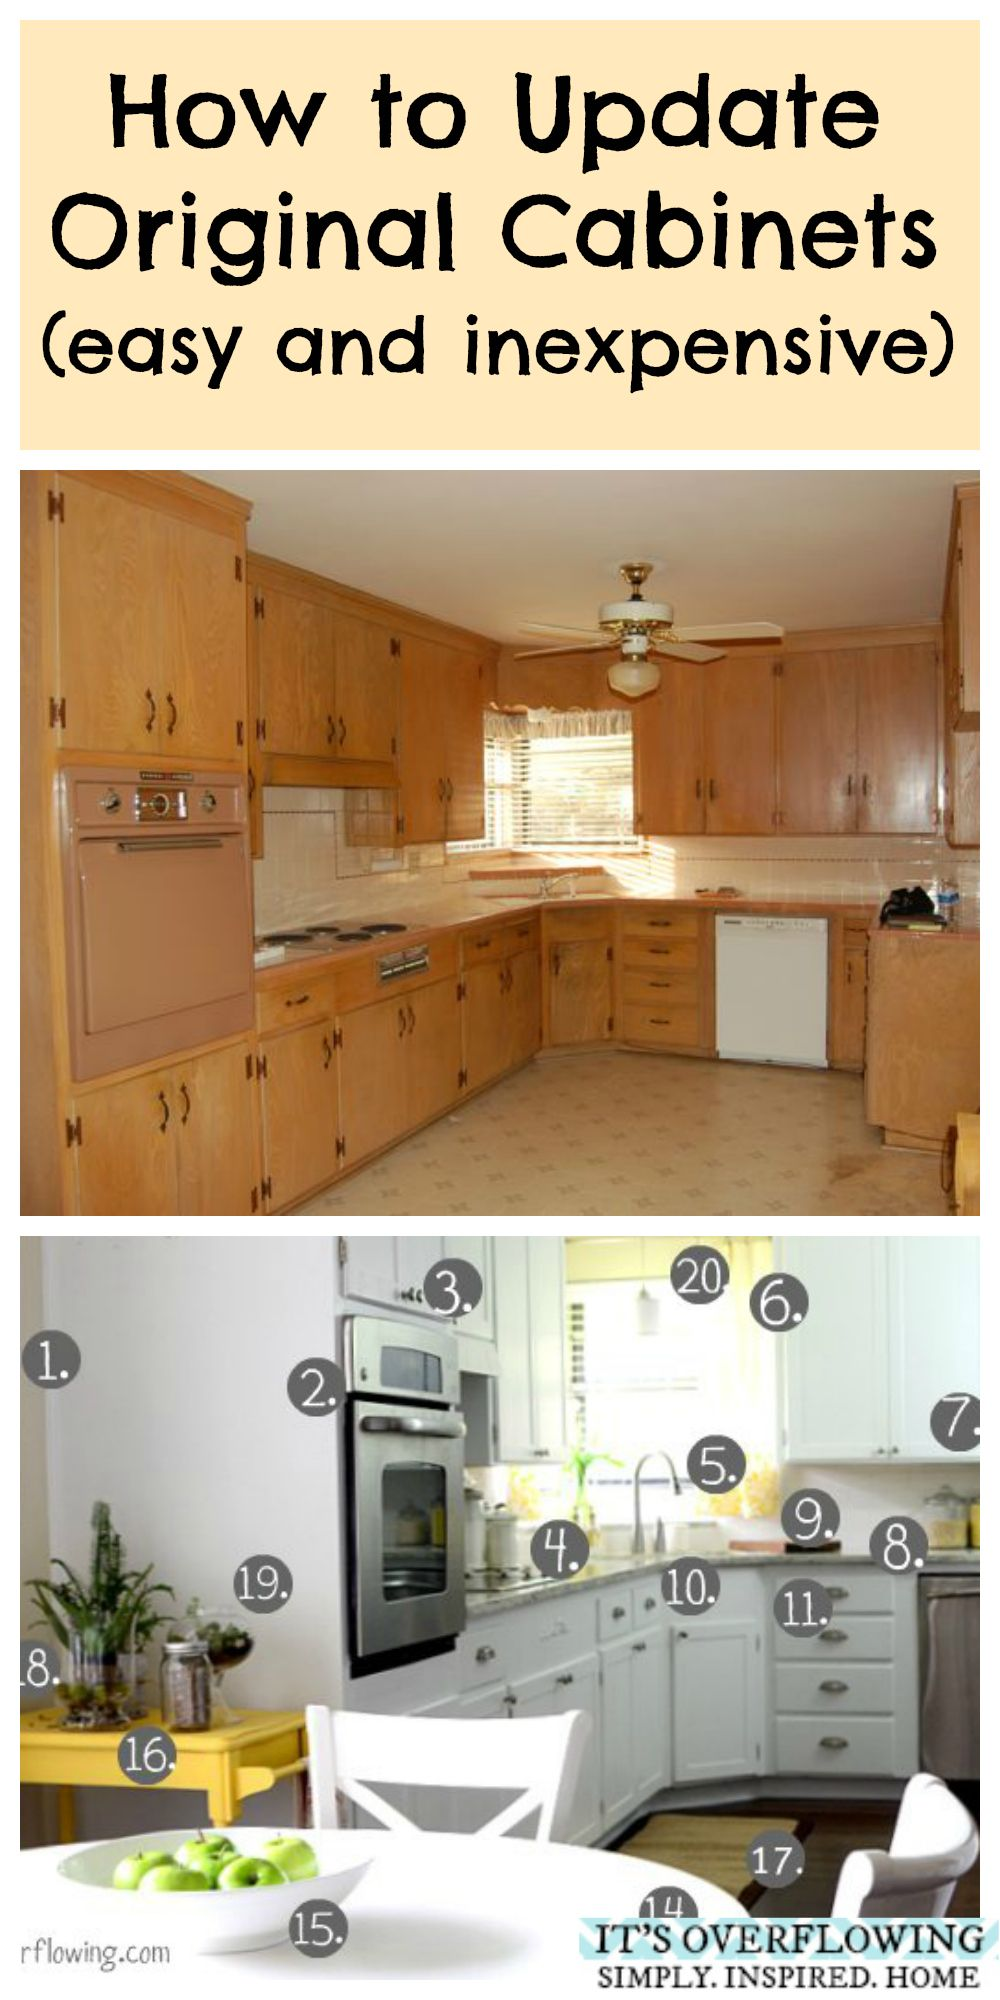 How To Update Original Cabinets Easy And Inexpensive For When I Best Average Cost To Replace Kitchen Cabinets Design Inspiration